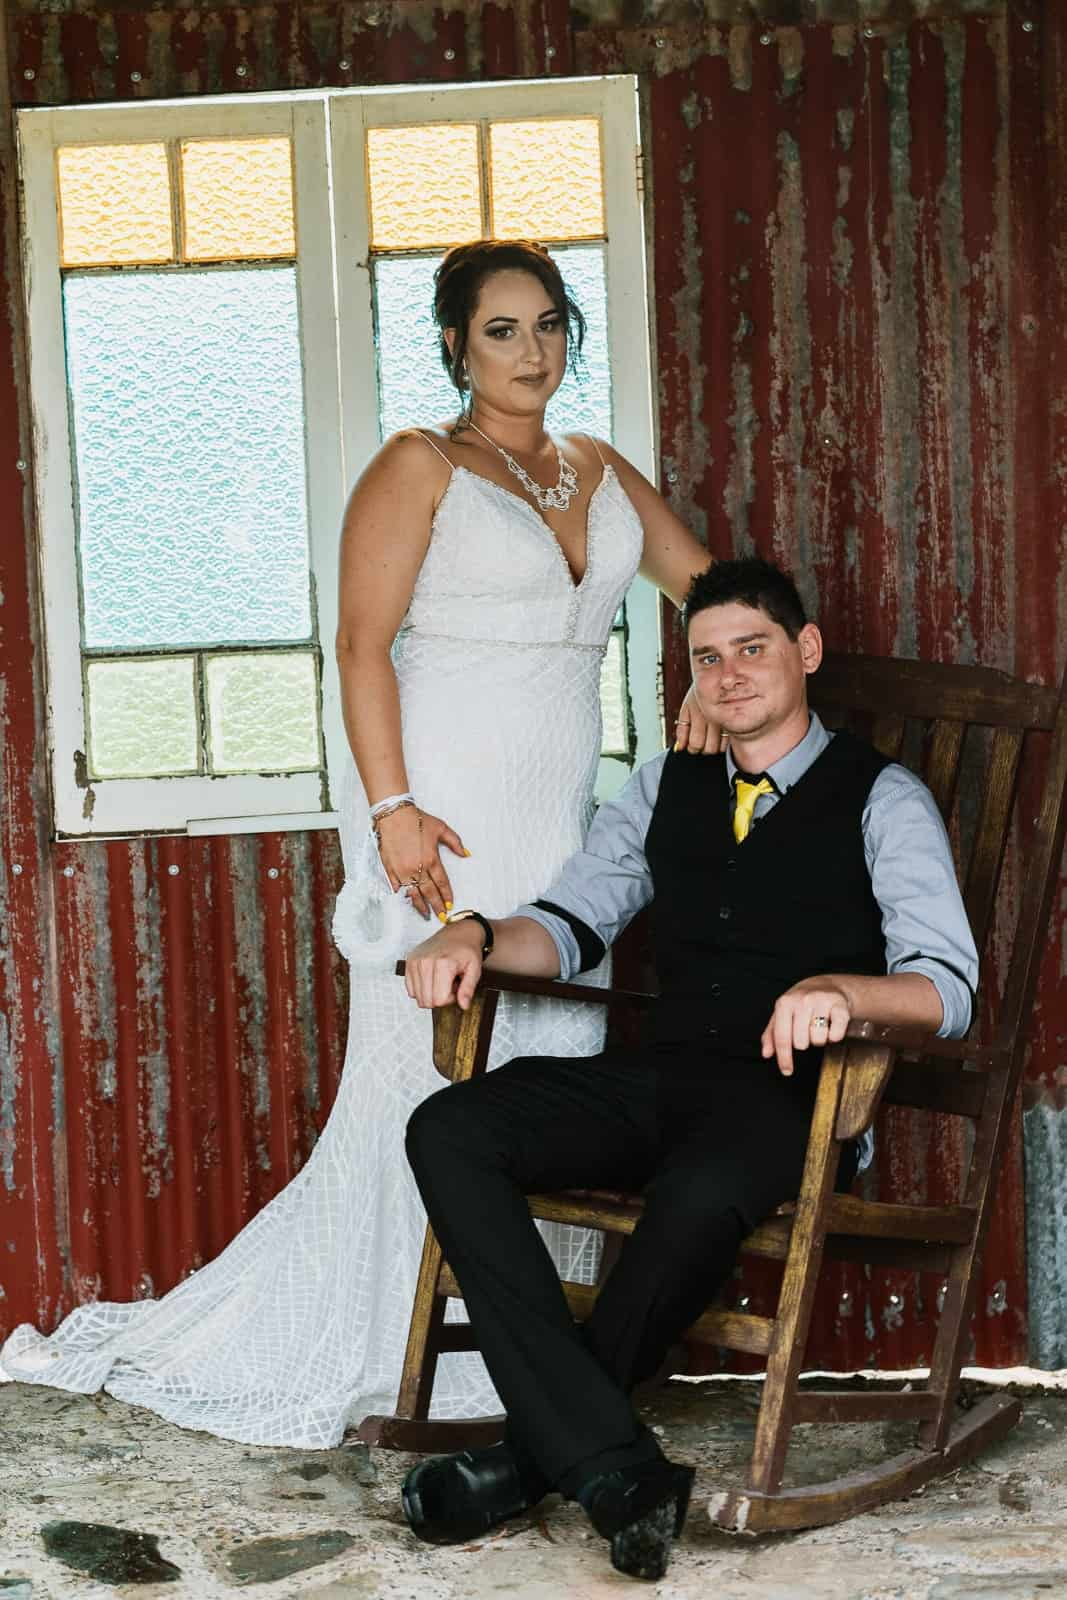 Wedding couple in old rocking chair